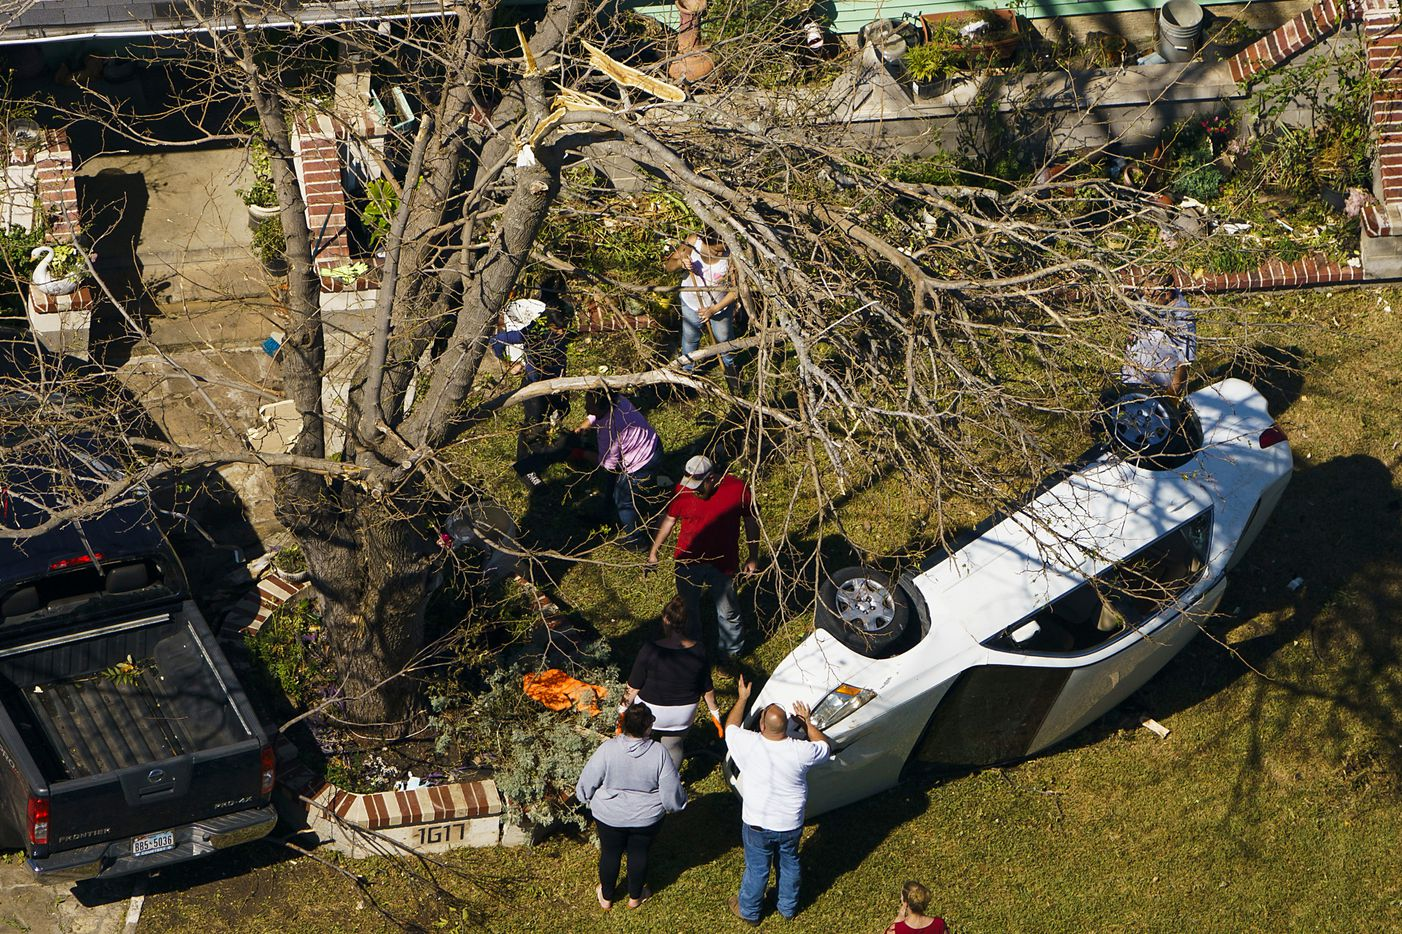 People survey an upturned automobile in the front yard of a home on Monday, Oct. 21, 2019, in Garland.